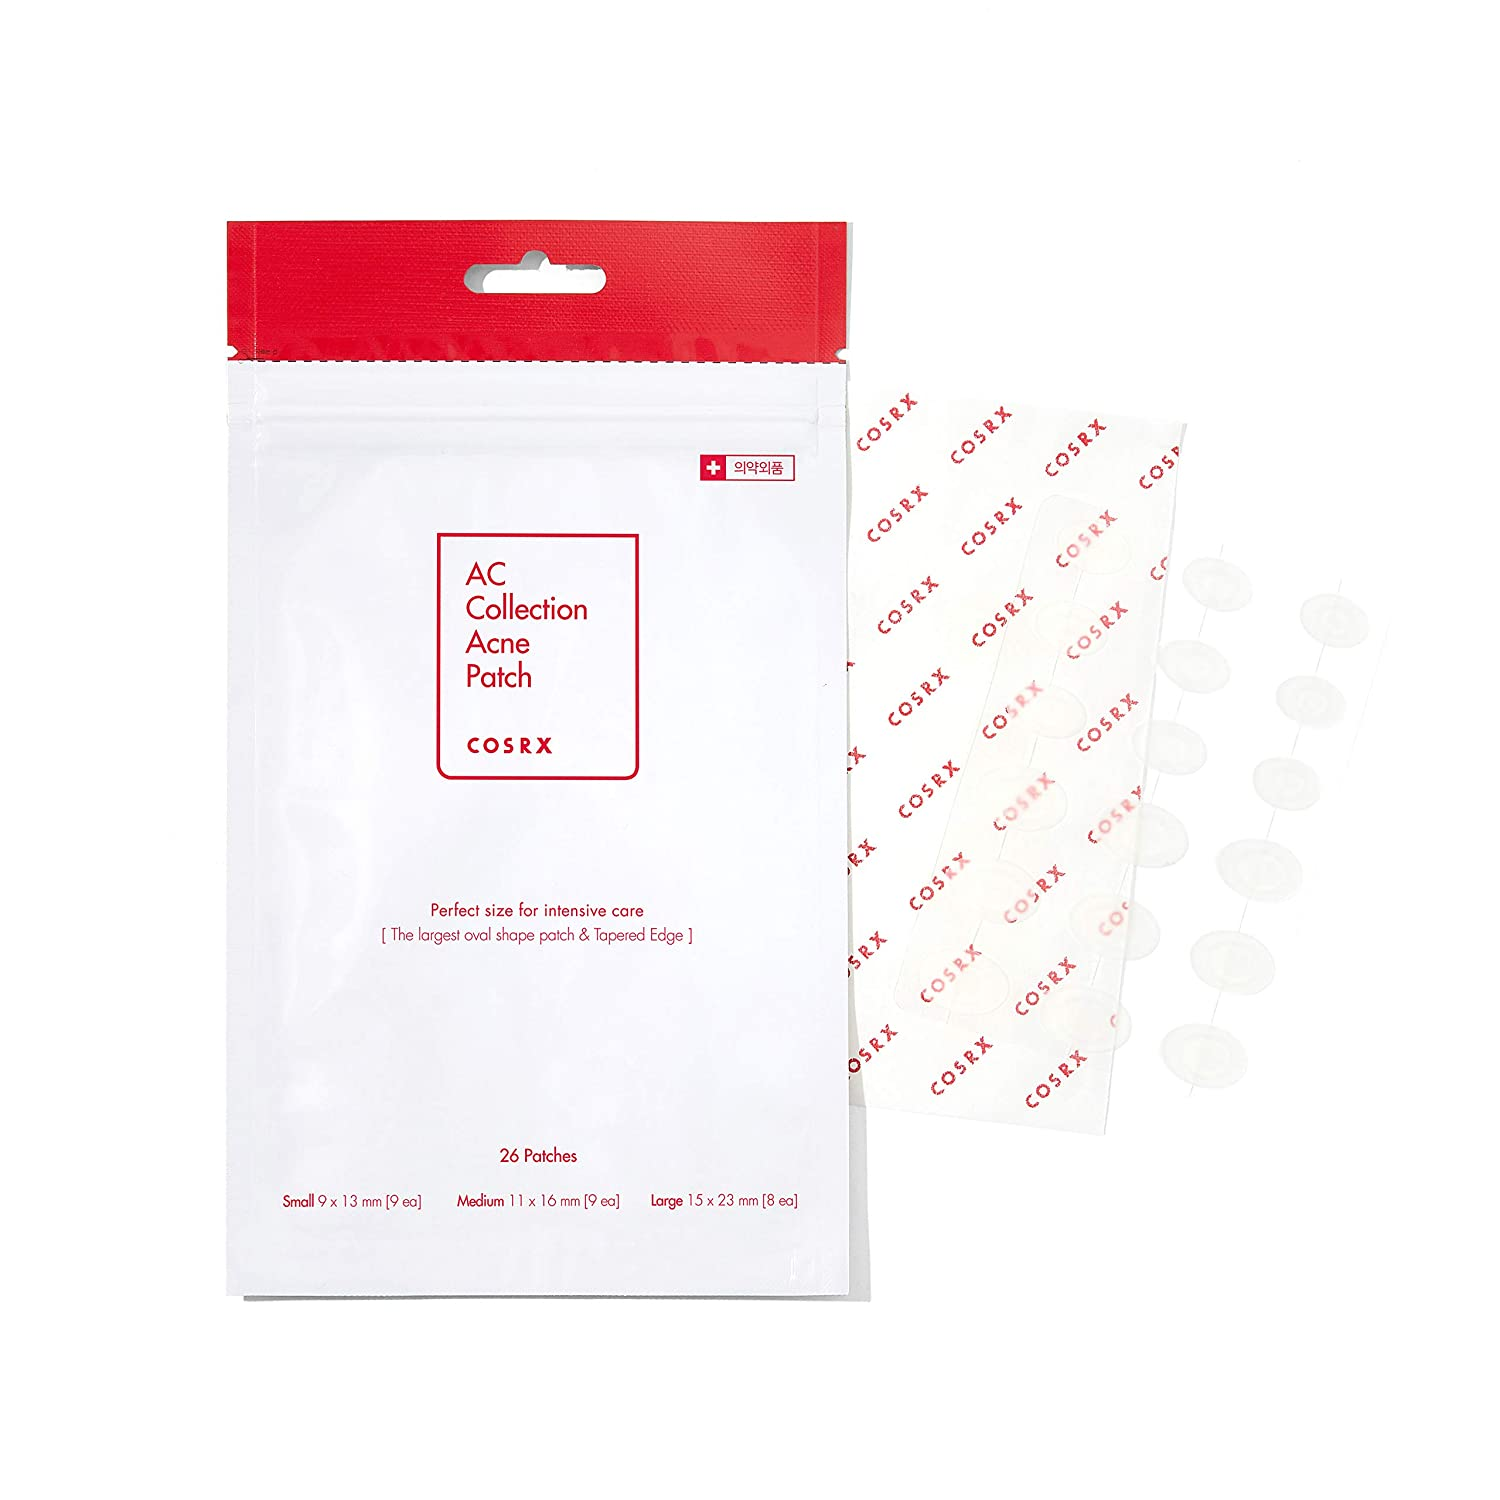 Патчи от акне Cosrx AC Collection Acne Patch фото